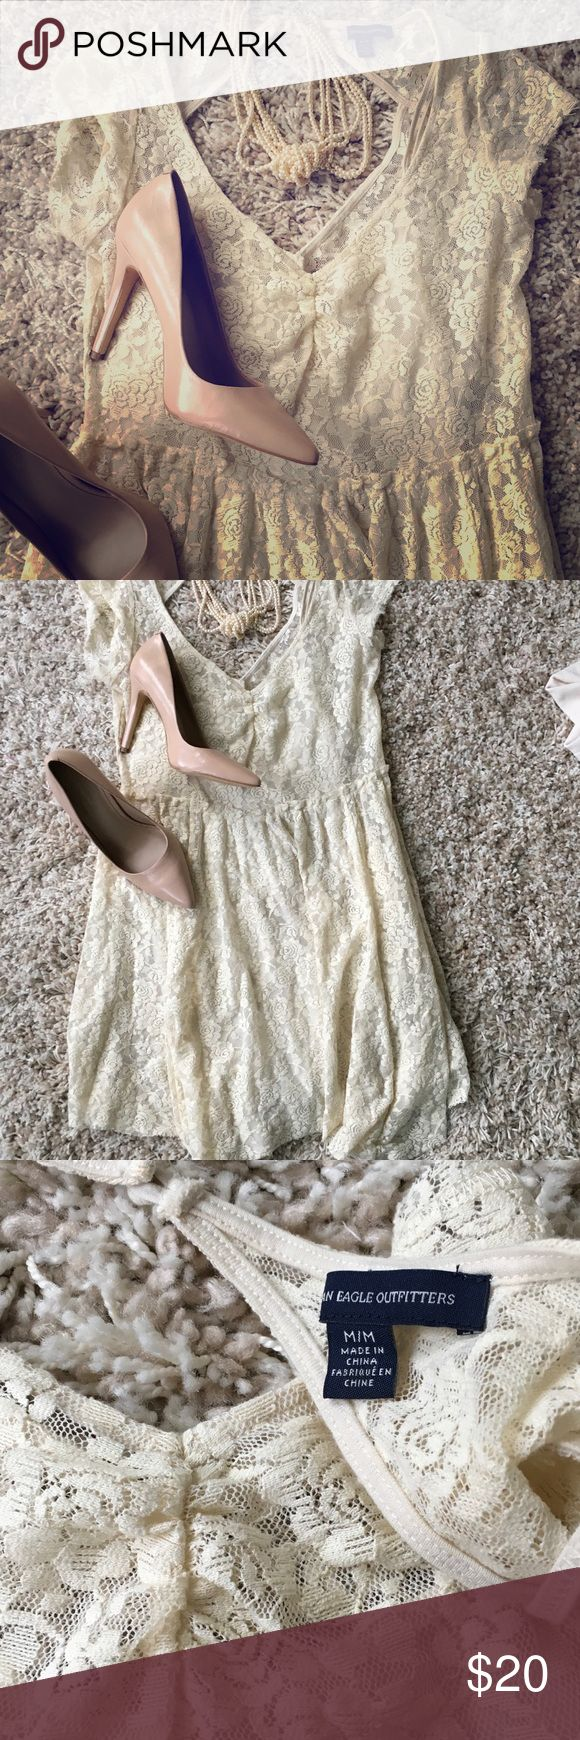 """American Eagle Outfitters Short sleeve lace dress Short sleeve lace dress with really cute back detail. Handkerchief hem 28"""" long at shortest point and 33"""" at longest point. Fully lined. Worn but in good condition. Price is firm unless bundled. American Eagle Outfitters Dresses"""